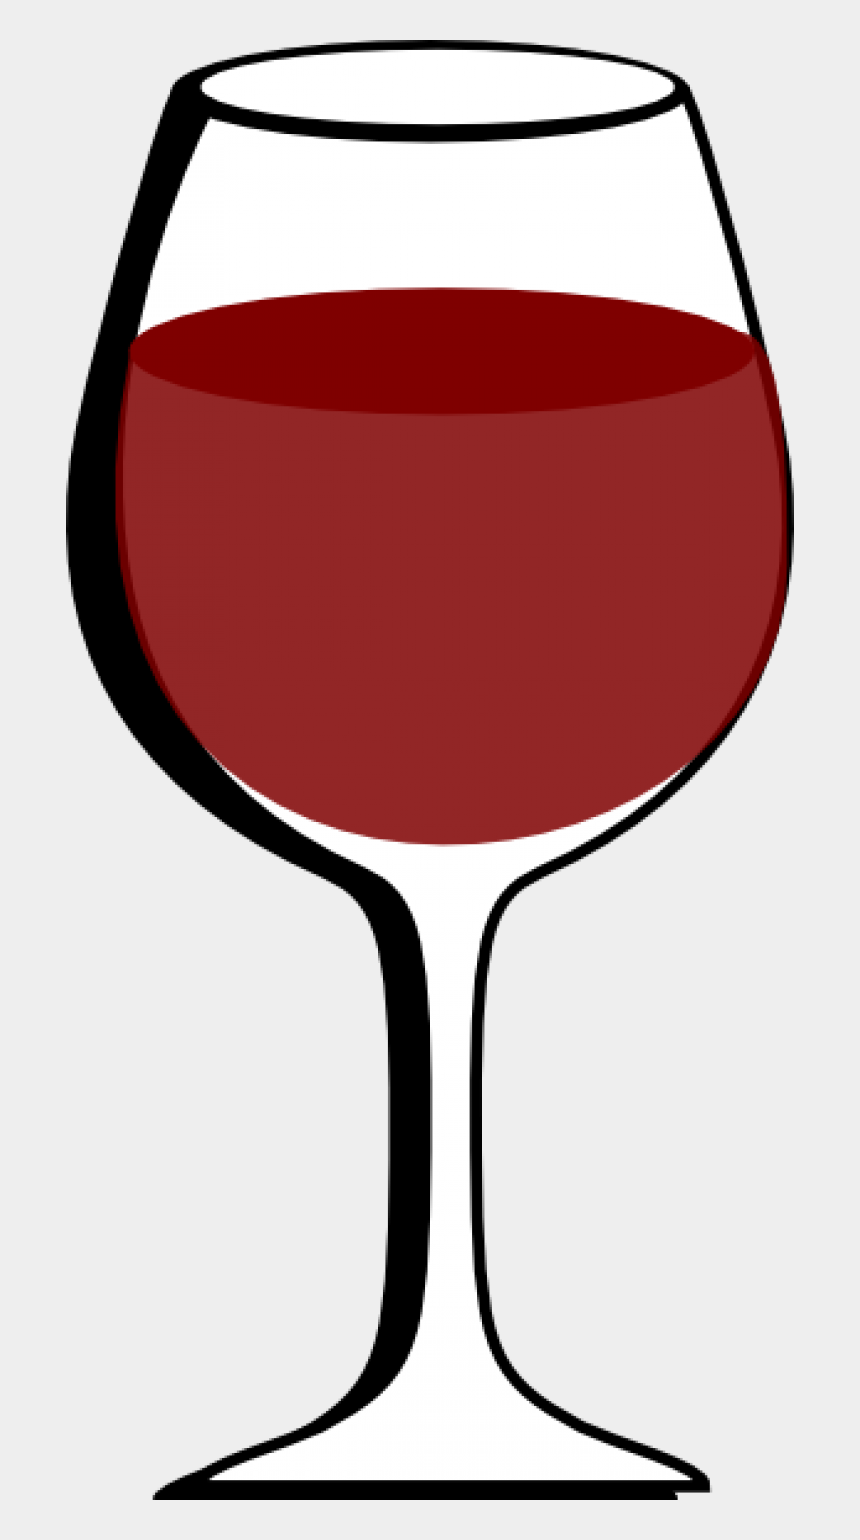 Wine Clip Art Red Wine Glass Clipart Cliparts Cartoons Jing Fm